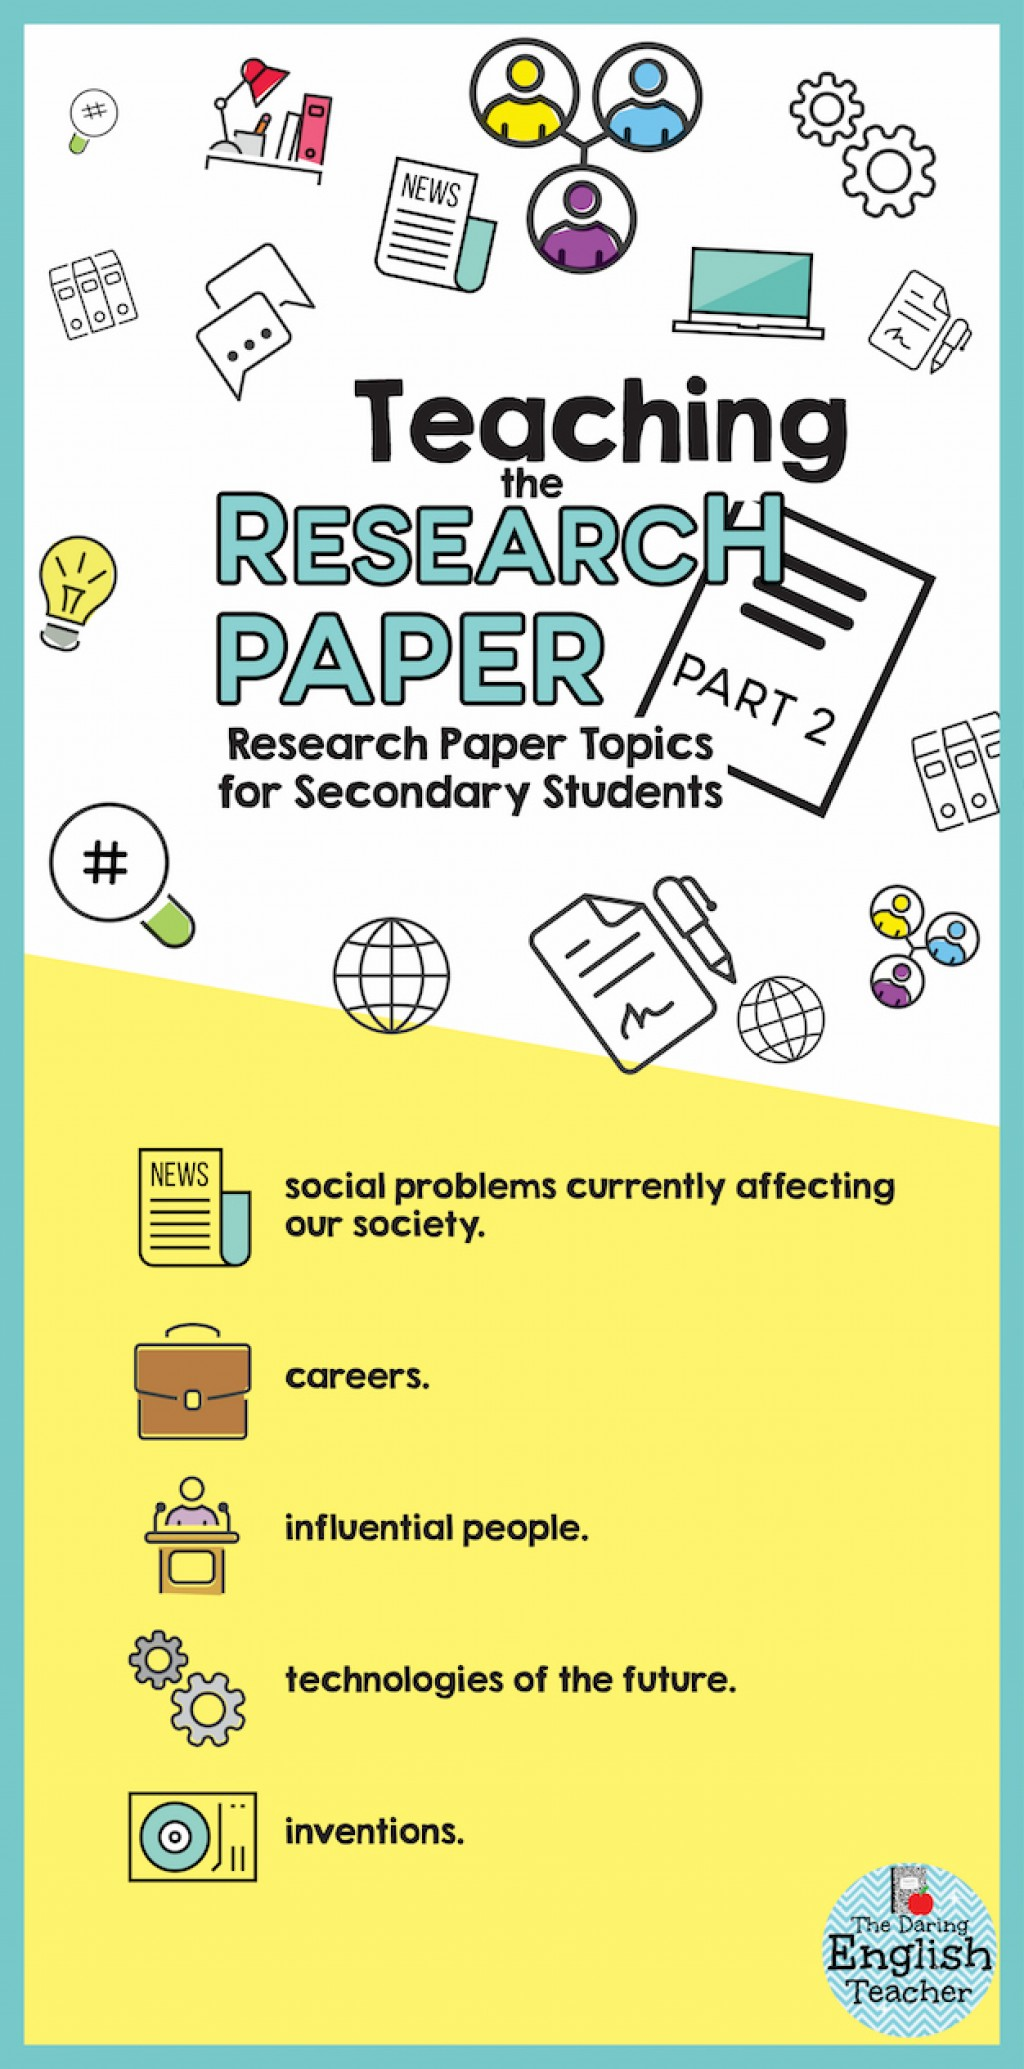 020 Infographic2bp22b2 Research Paper Topic For Unusual A Topics In Developmental Psychology On Education Frankenstein Large